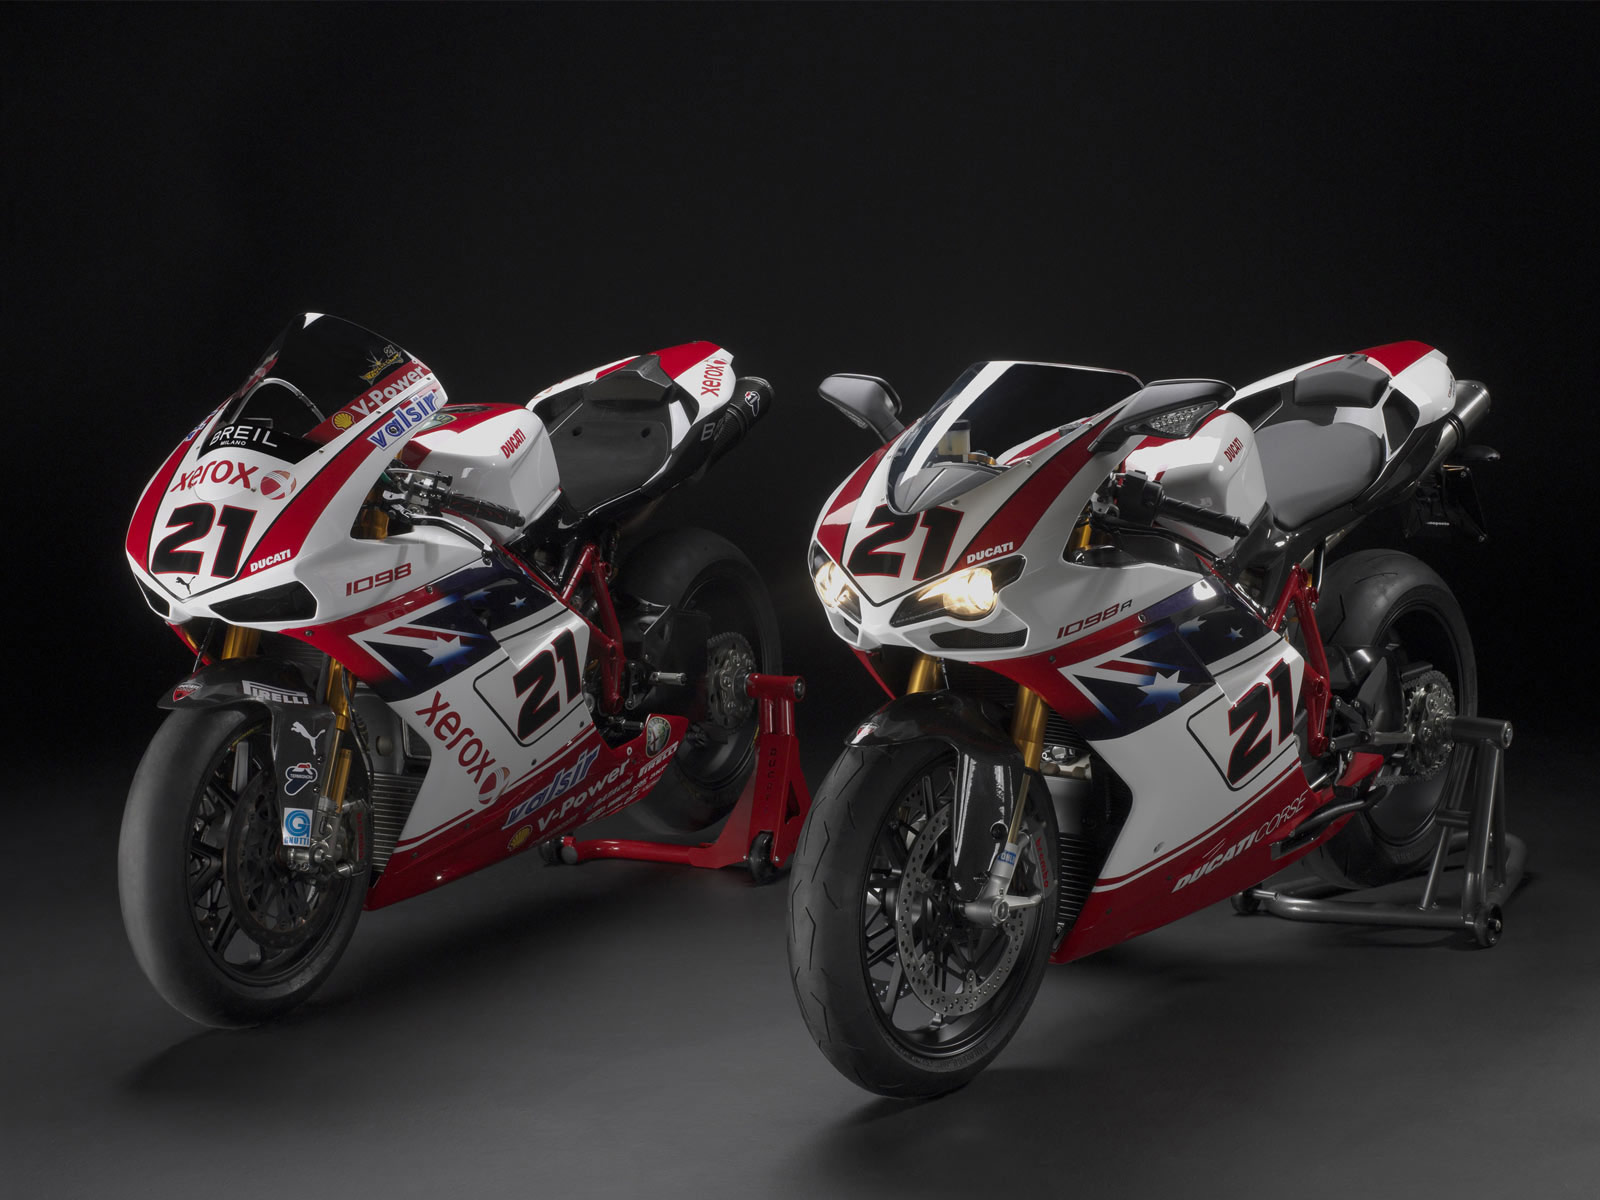 http://3.bp.blogspot.com/-HUa2SiMe7l4/To0kGj4ms-I/AAAAAAAABlg/TUmDUfAmyxk/s1600/2009-DUCATI-1098R-%20Bayliss-LE_motorcycle-desktop-wallpaper-4.jpg